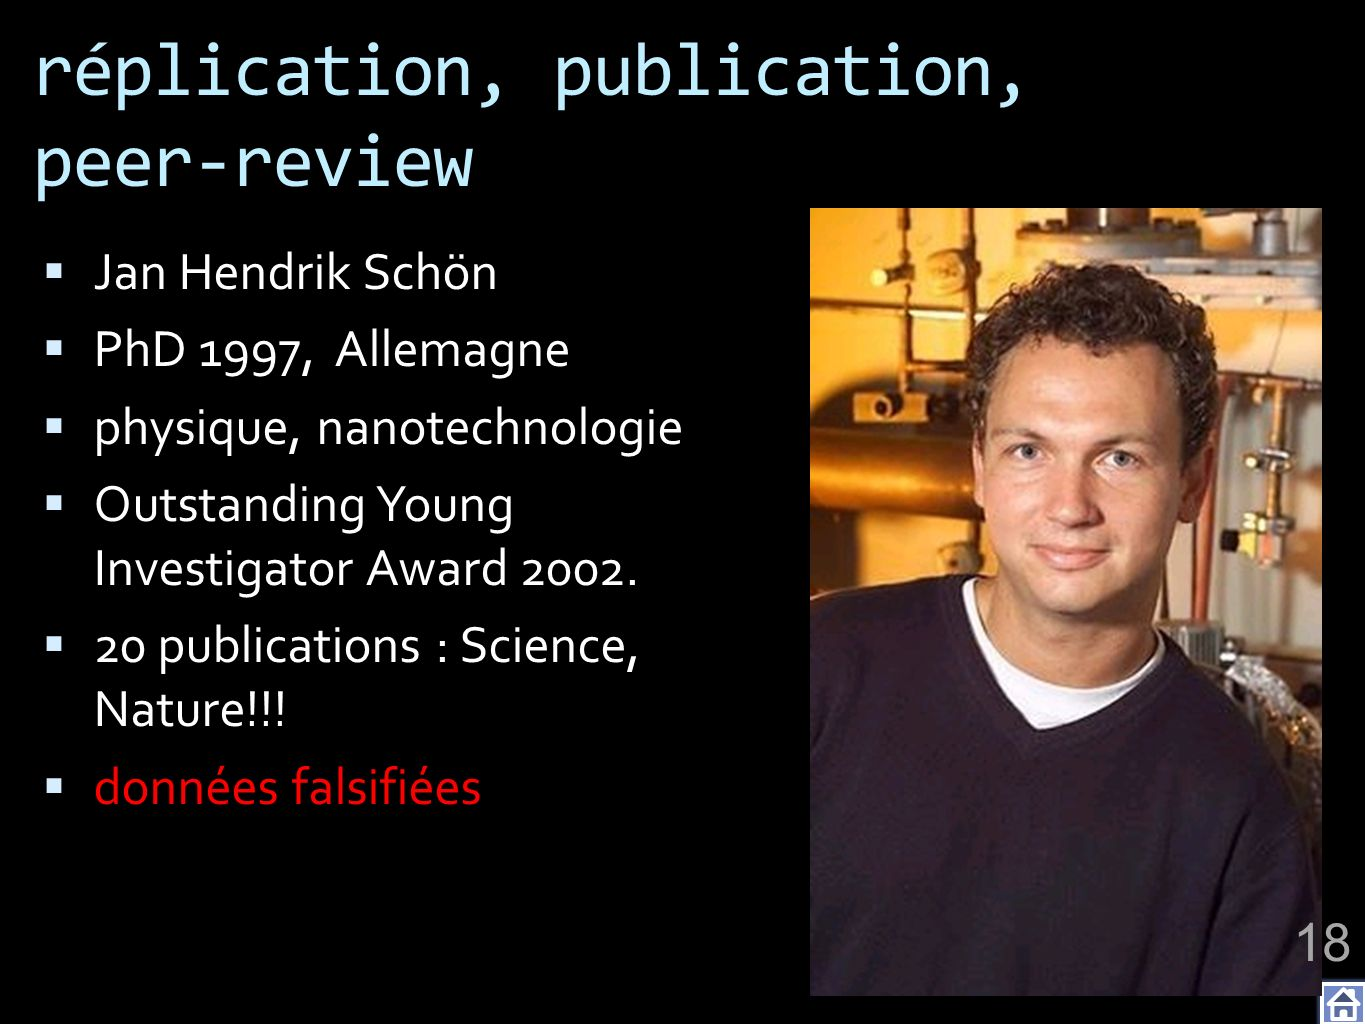 réplication, publication, peer-review